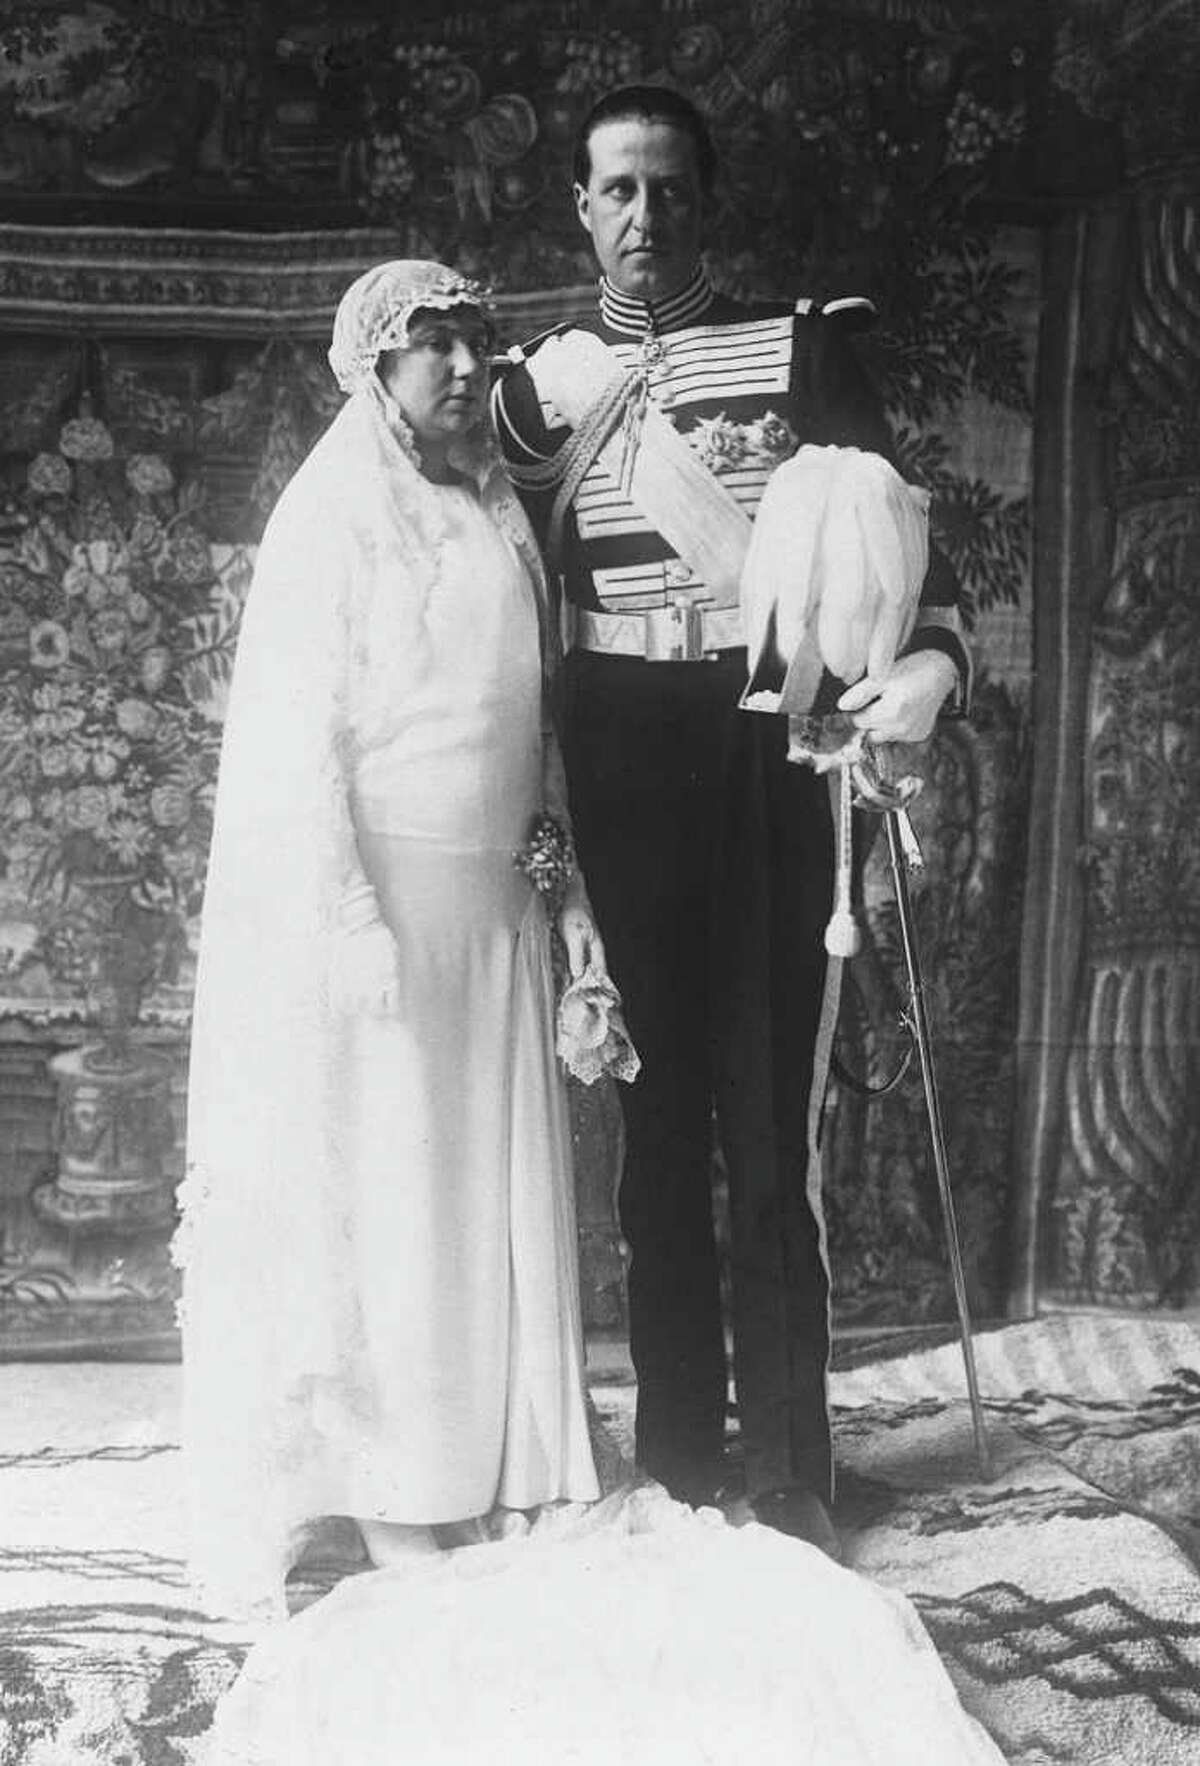 Formal picture following the wedding of Infanta Isabel Alfonsa of Spain, and Count Zemoisky Jan Kany of Poland, that took place in the Chapel of the Royal Palace, in Madrid, March 9, 1929. (AP Photo)